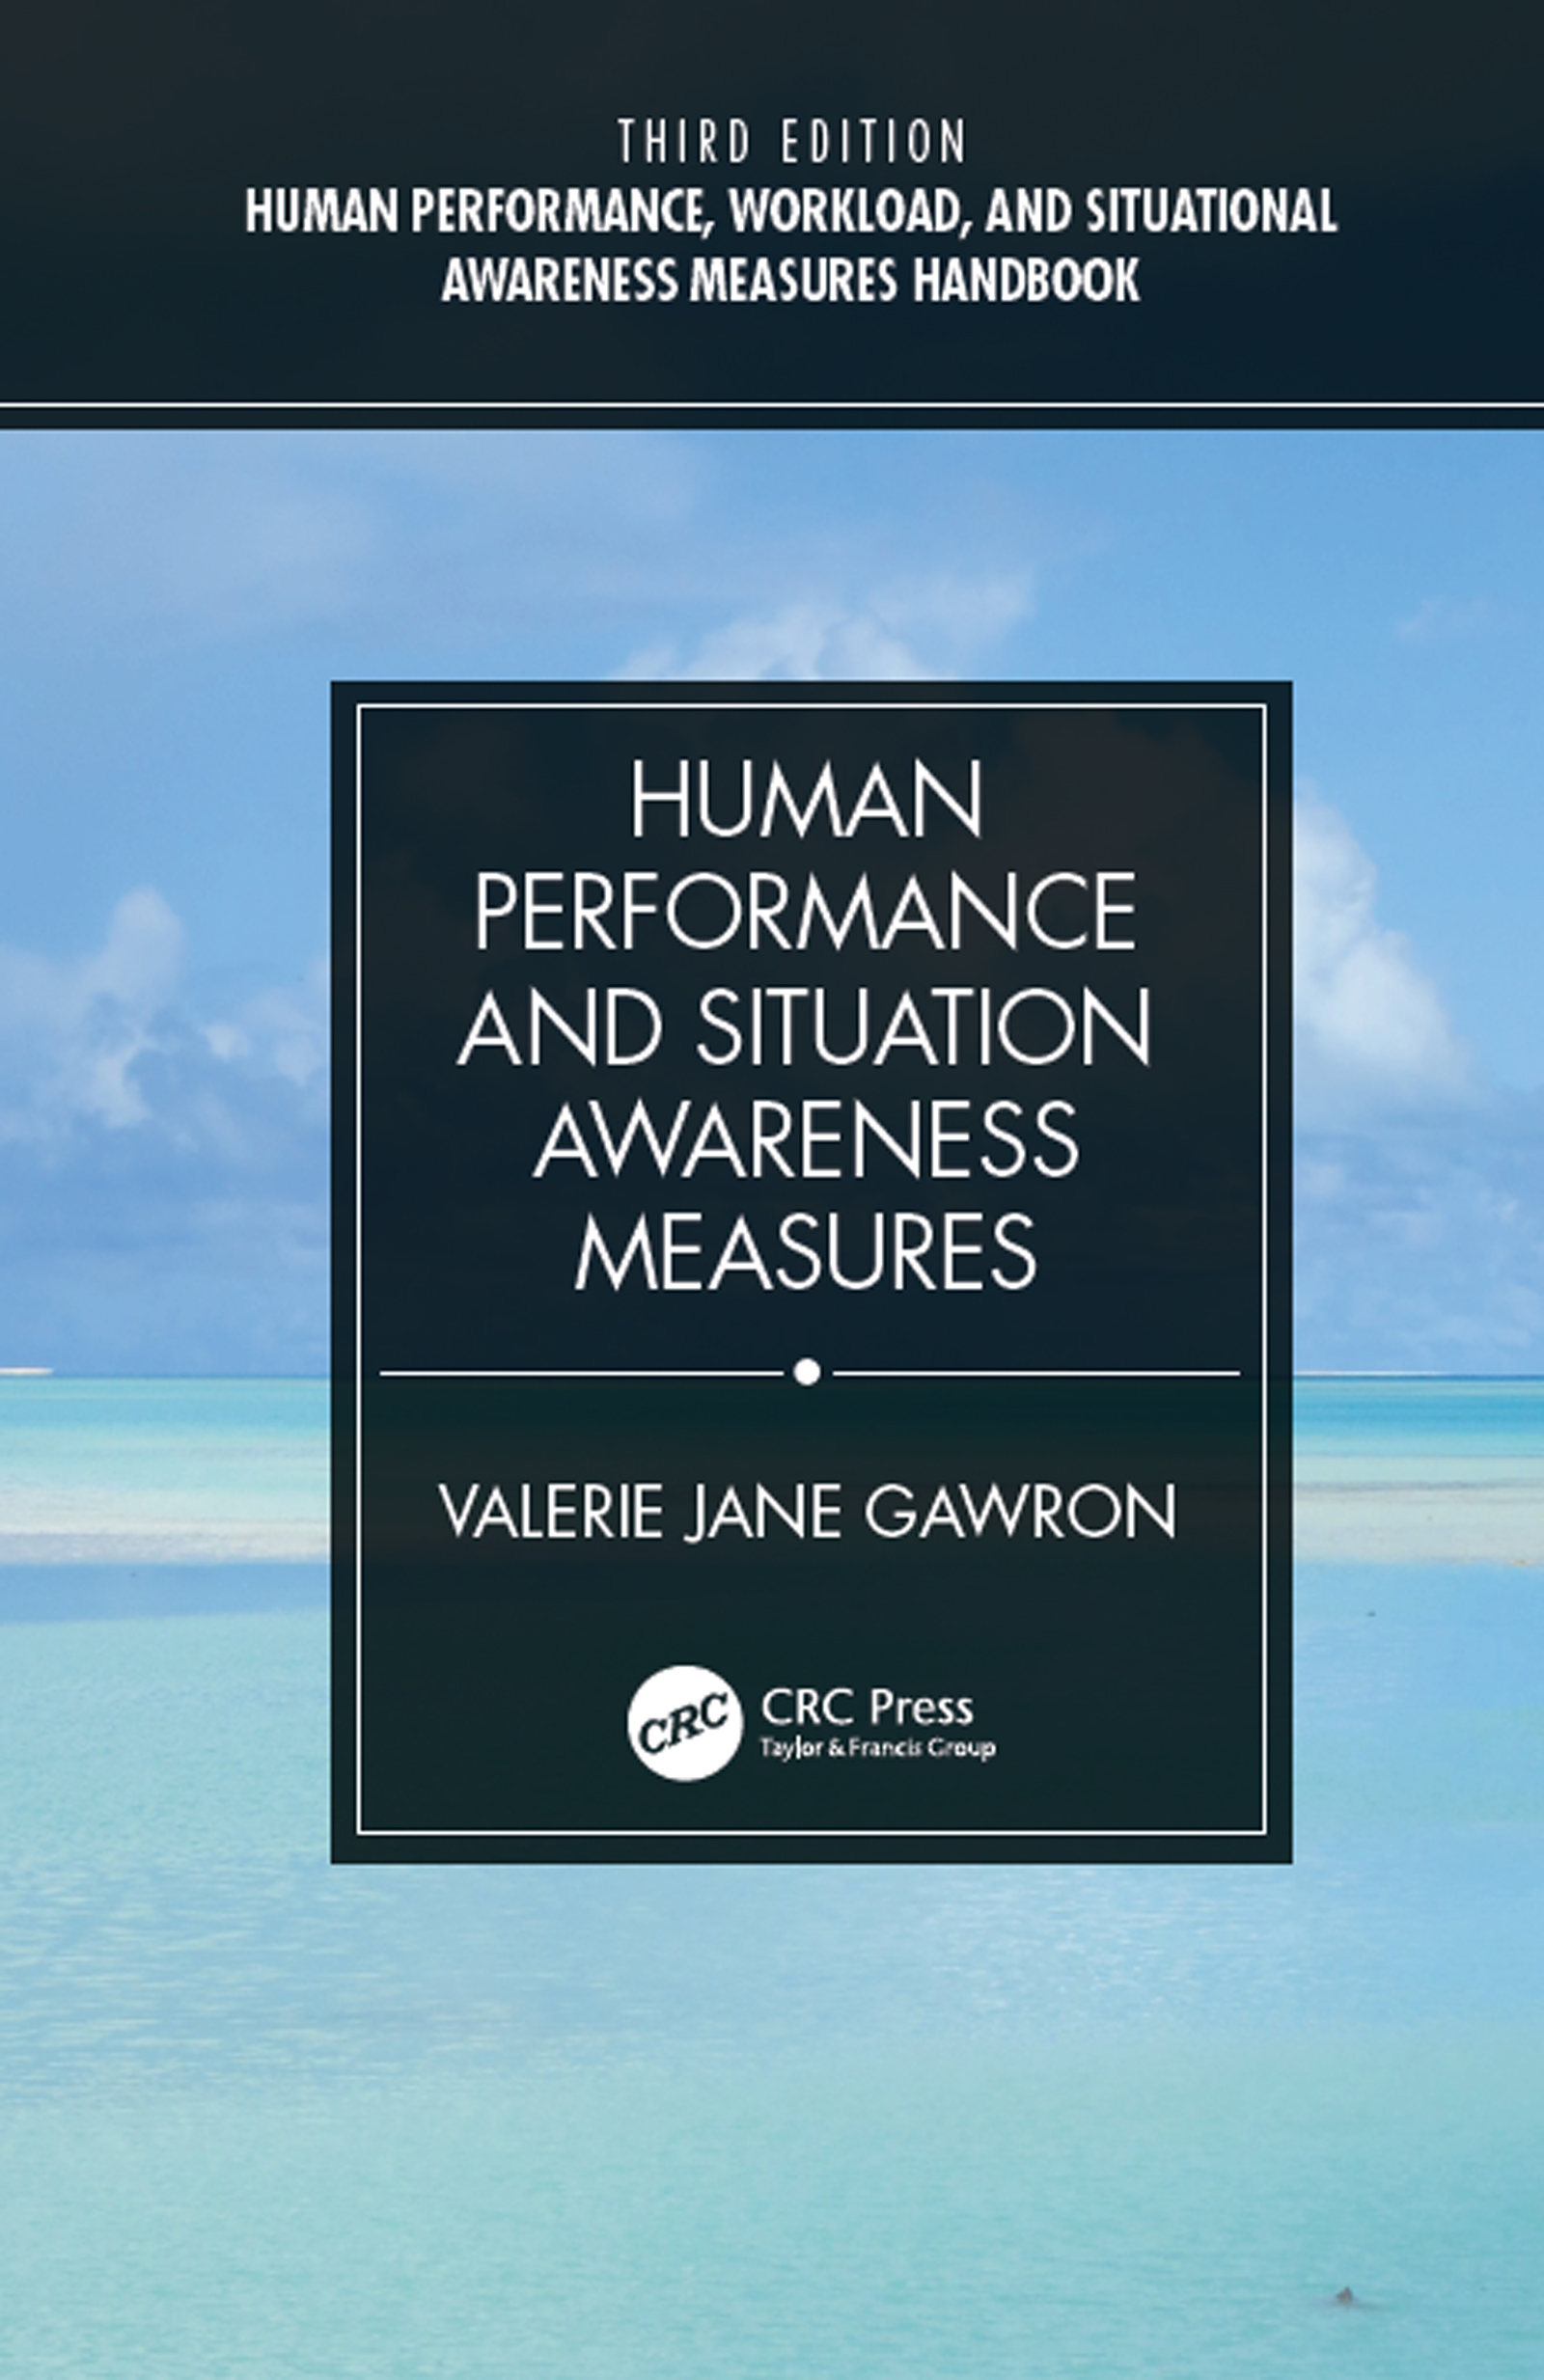 Human Performance, Workload, and Situational Awareness Measures Handbook, Third Edition - 2-Volume Set book cover